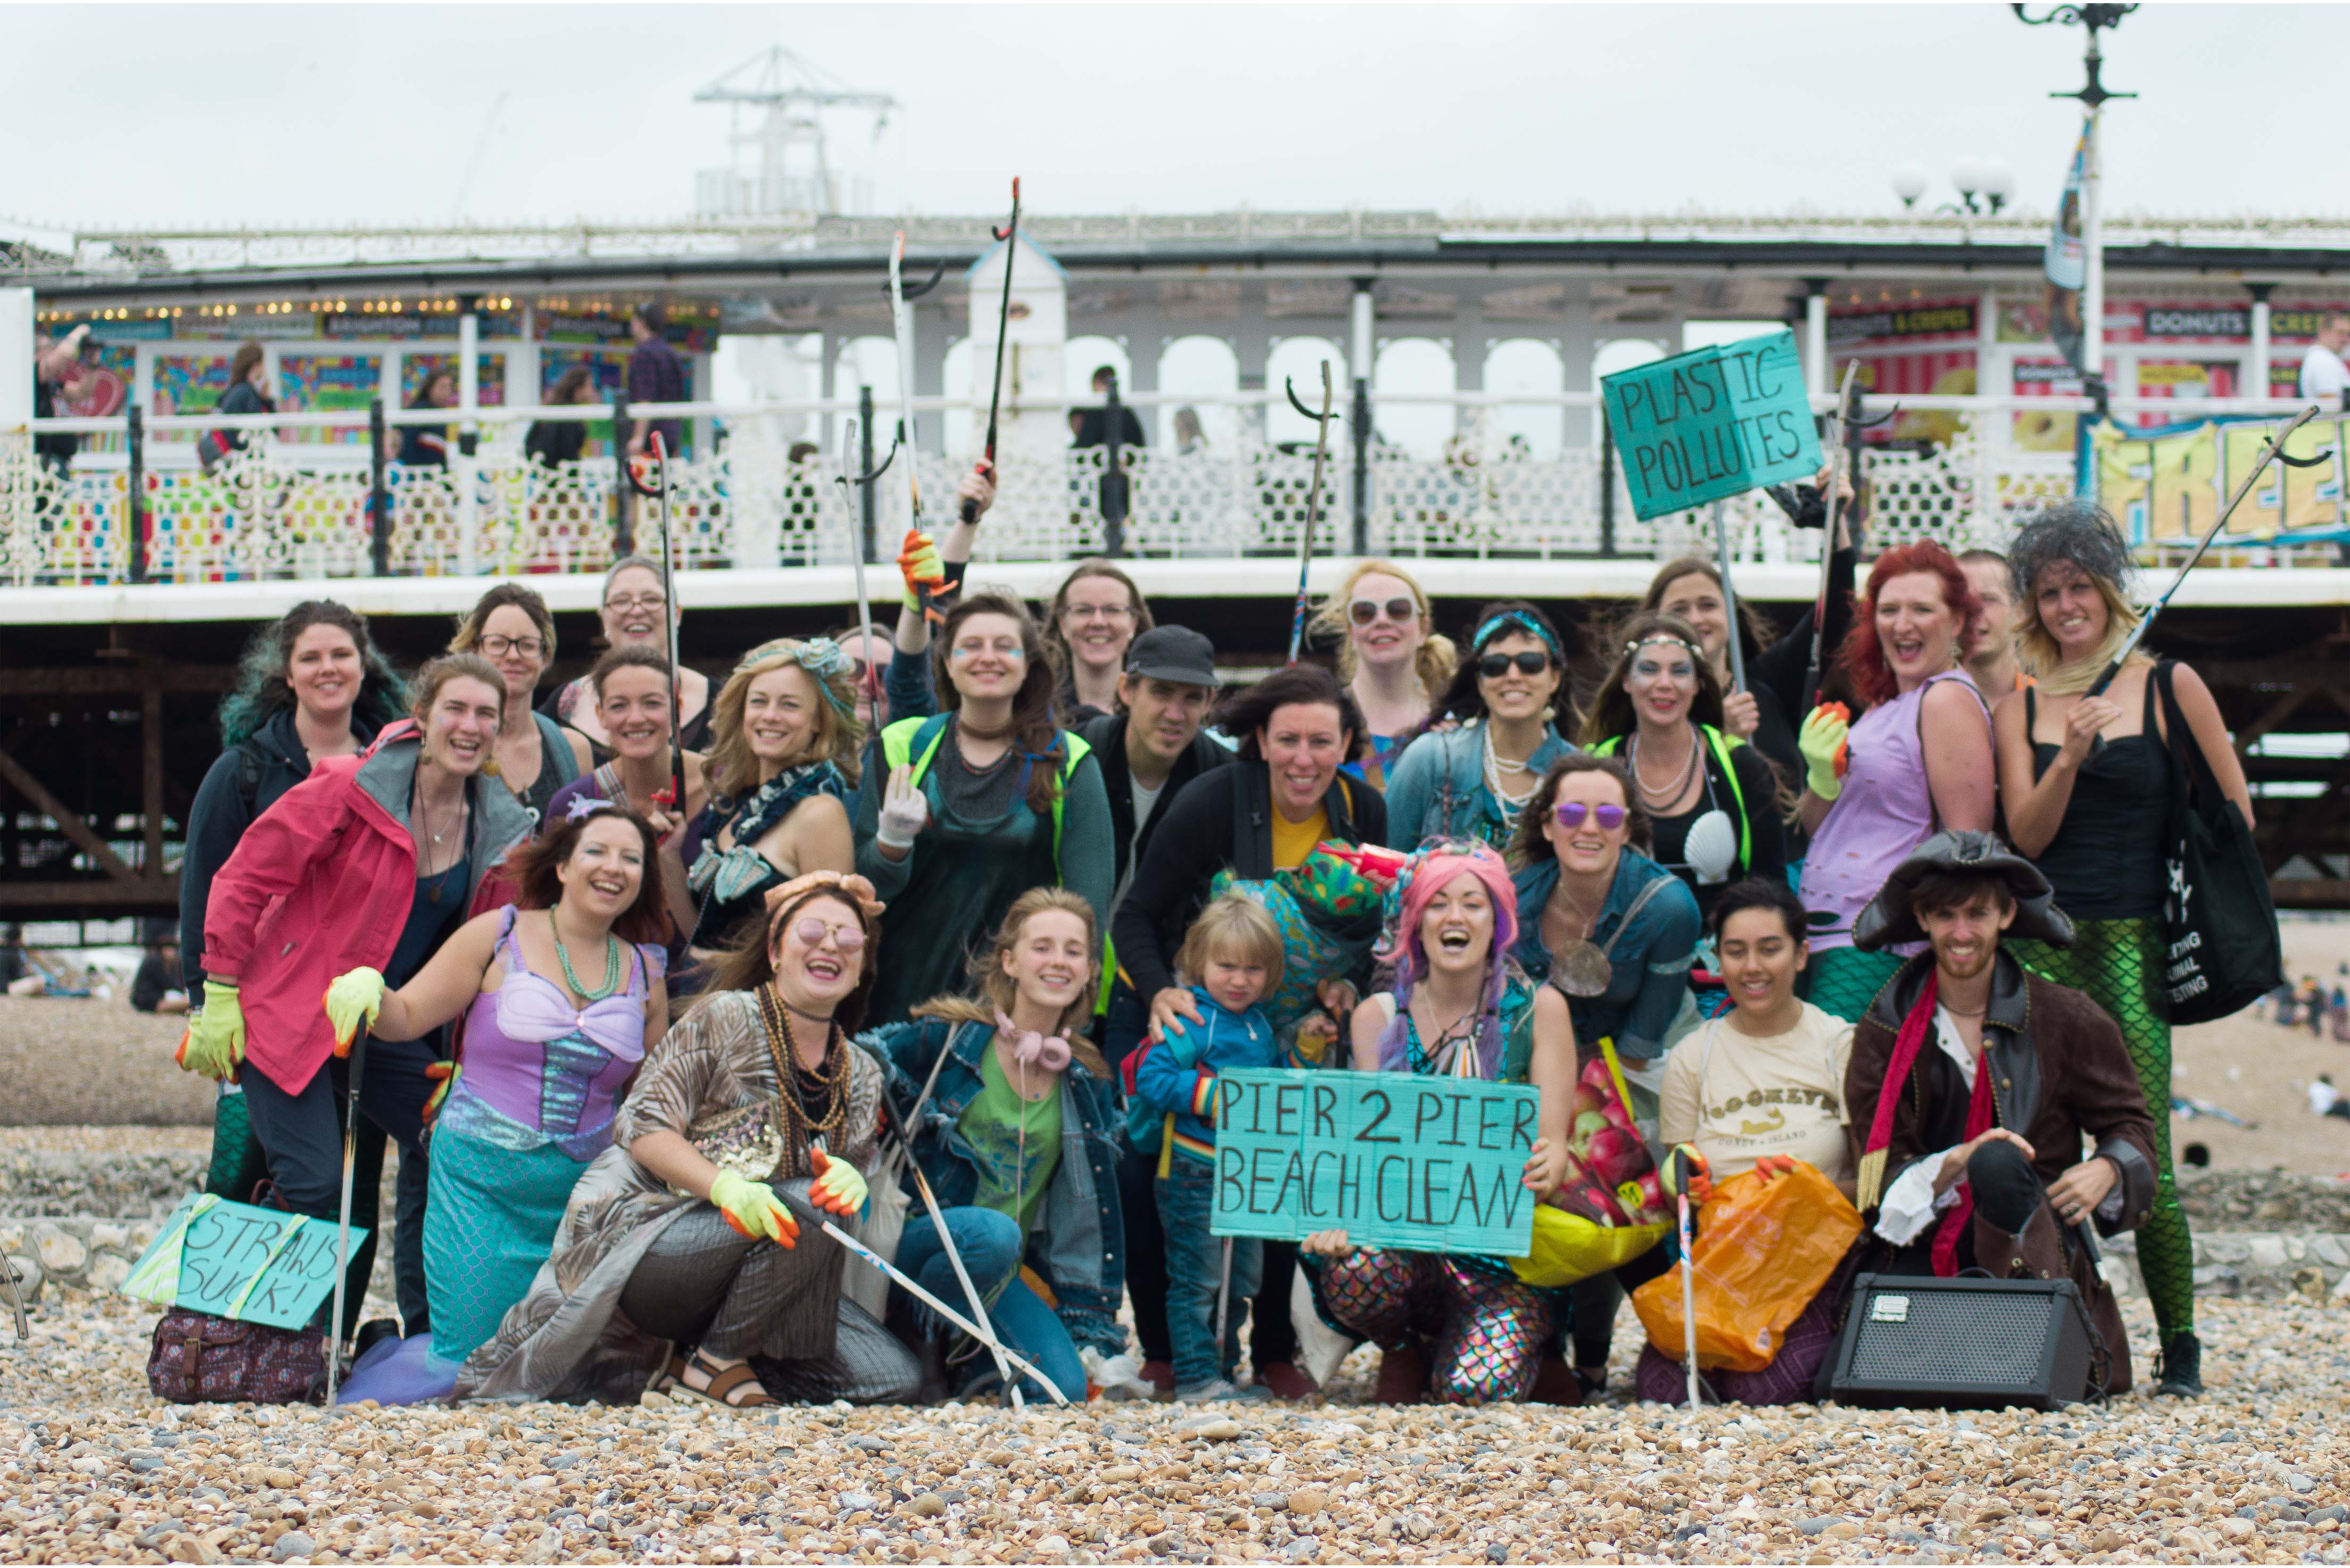 Pier2Pier Brighton our latest #LitterHeroes in action